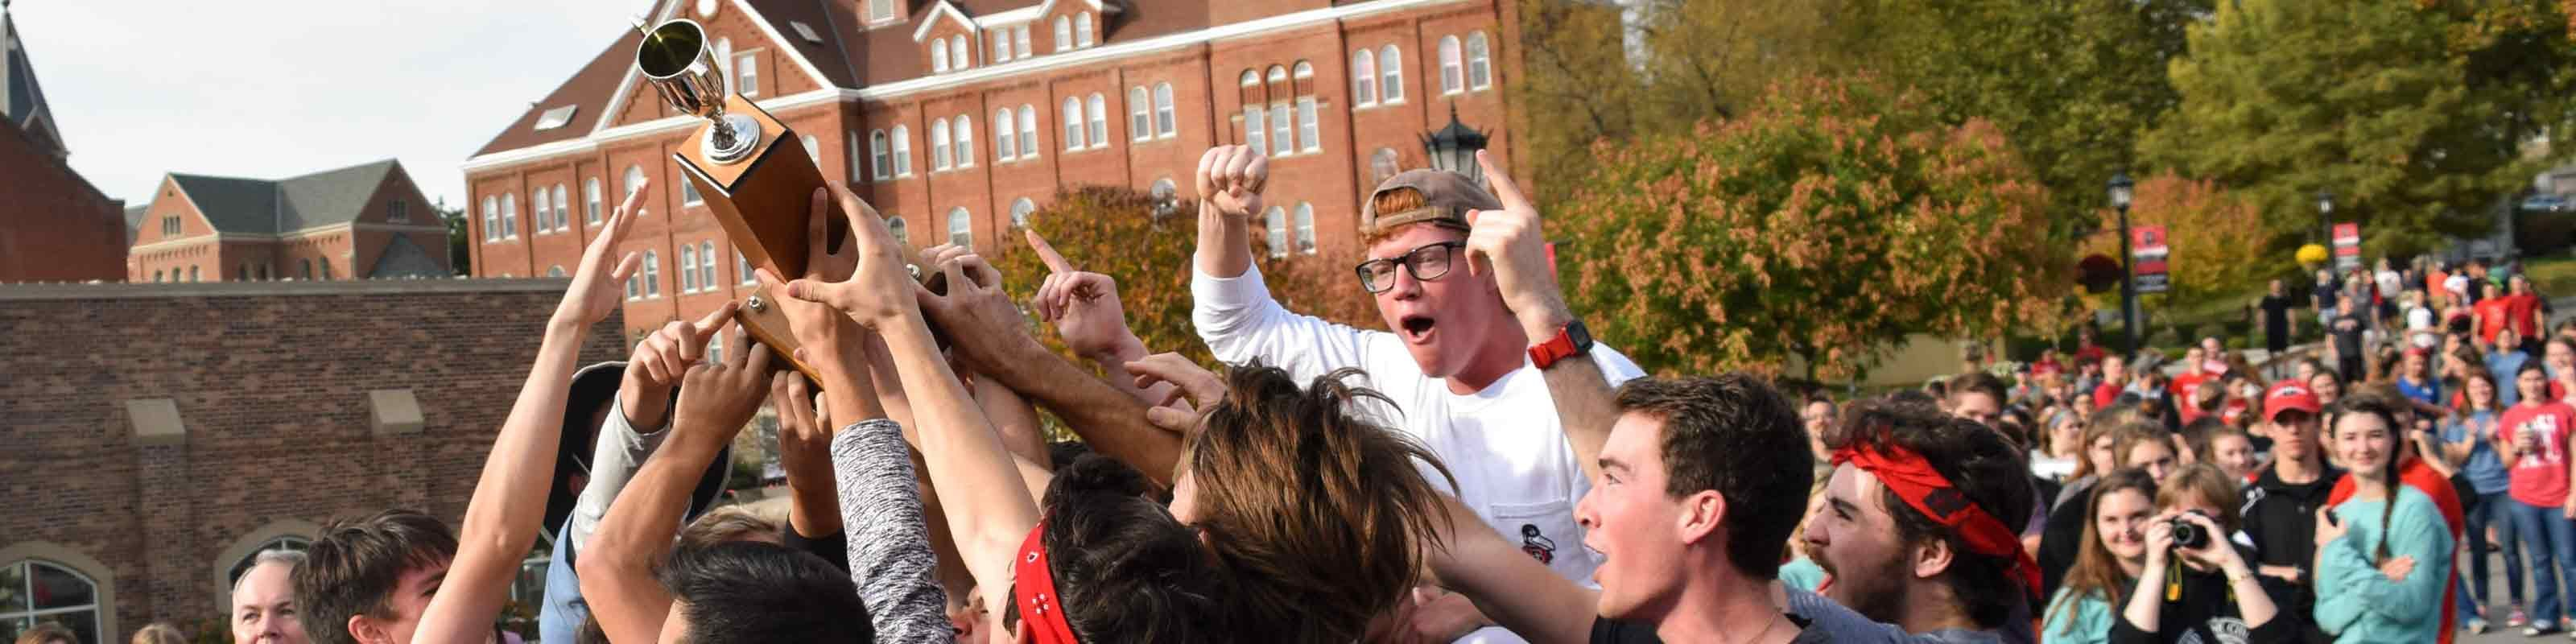 A group holds up a trophy at the end of the Homecoming Bed Races